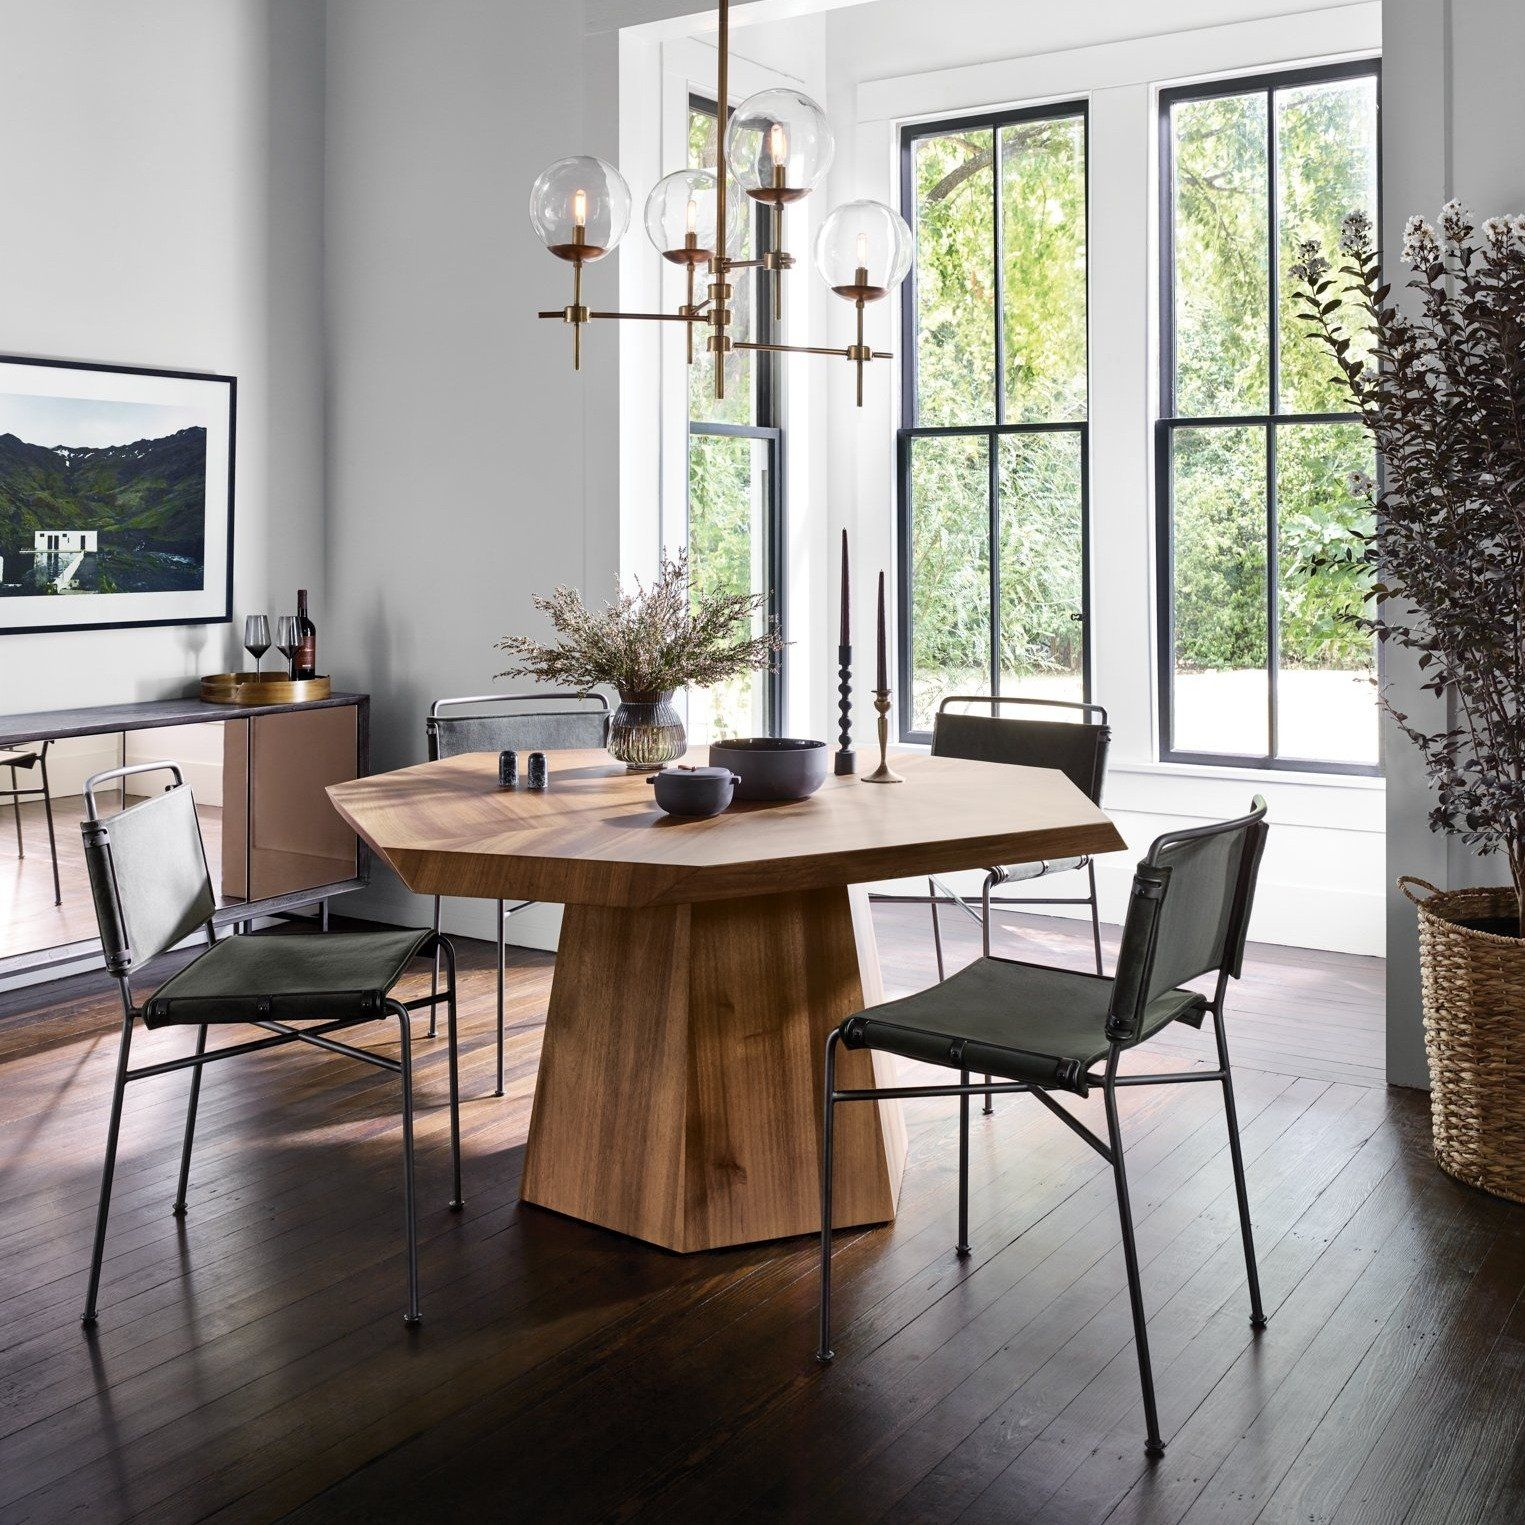 Wharton Dining Chairwaxed Black Distressed Black Faux Leather Scandinavian Dining Room Minimalist Dining Room Modern Dining Table